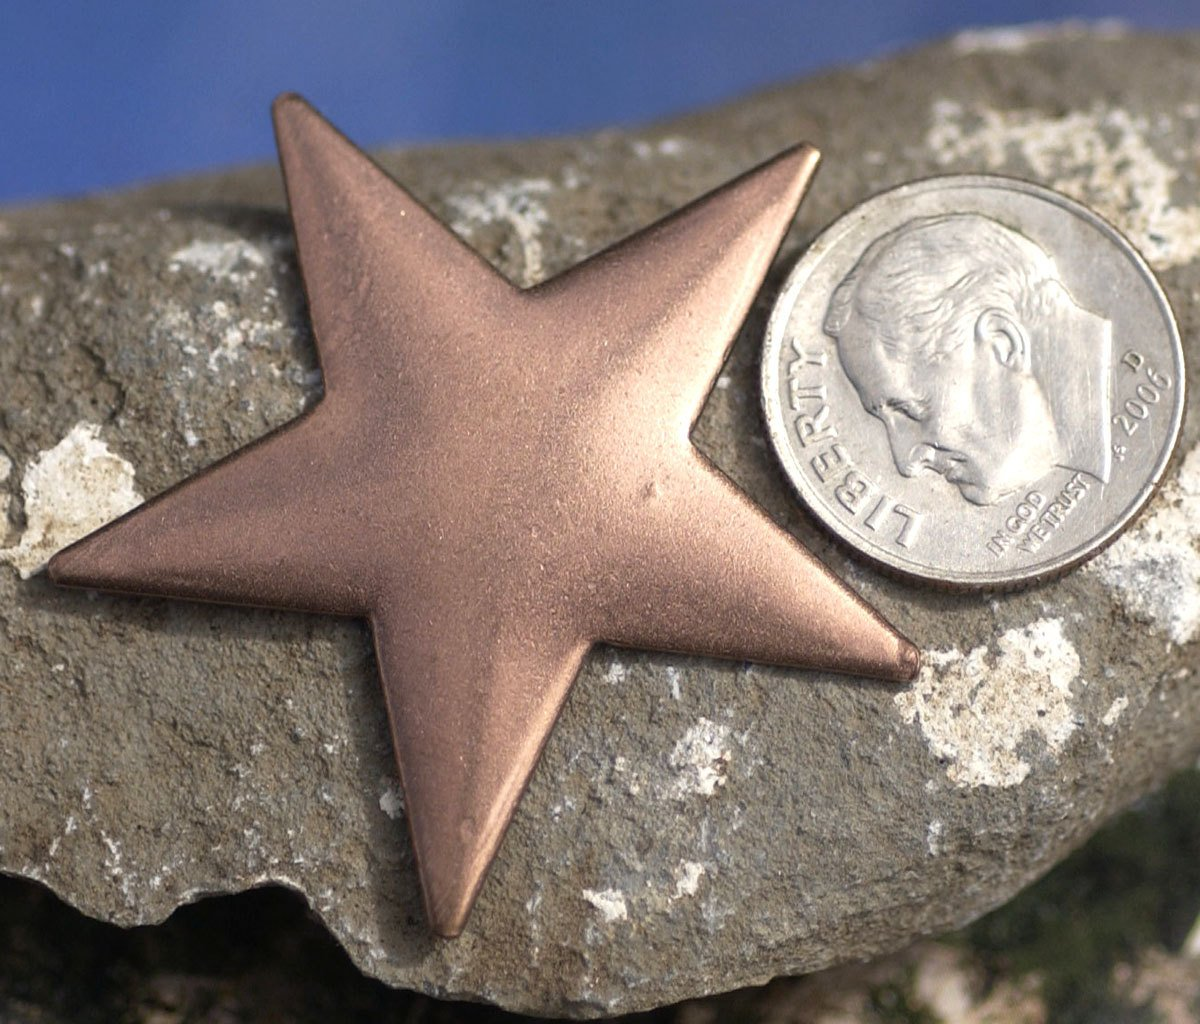 Copper Star Blank 20g 36mm for Enameling Stamping Texturing Soldering Pendant Jewelry Making